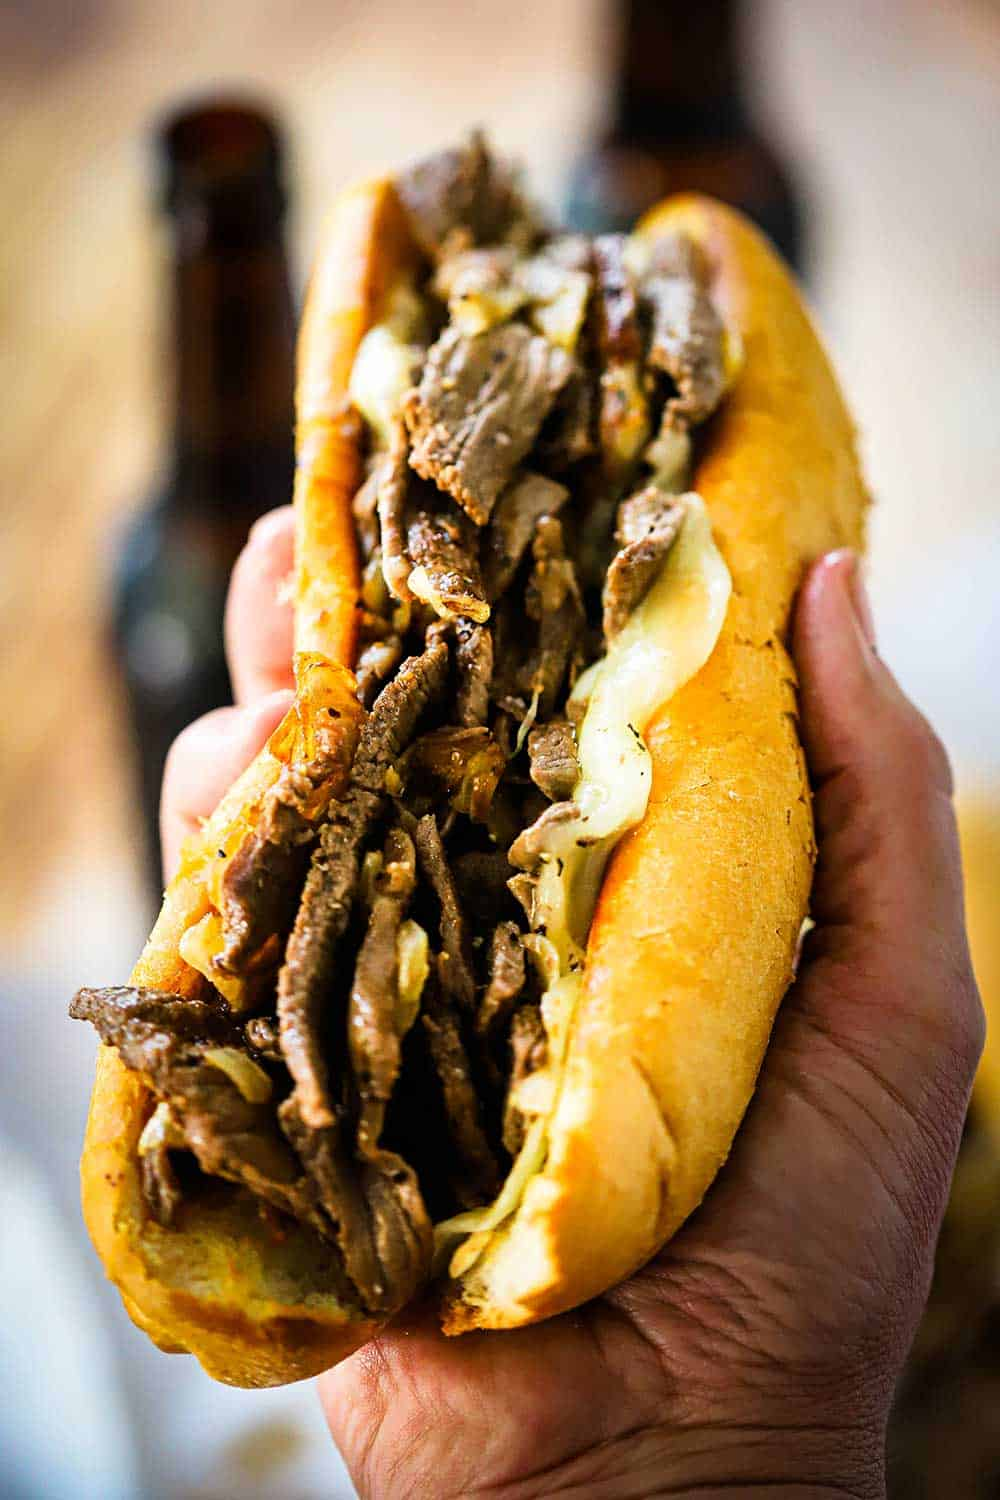 A hand holding up a Philly cheesesteak sandwich loaded with cooked ribeye slices, onions, and melty provolone cheese on a toasted hoagie bun.